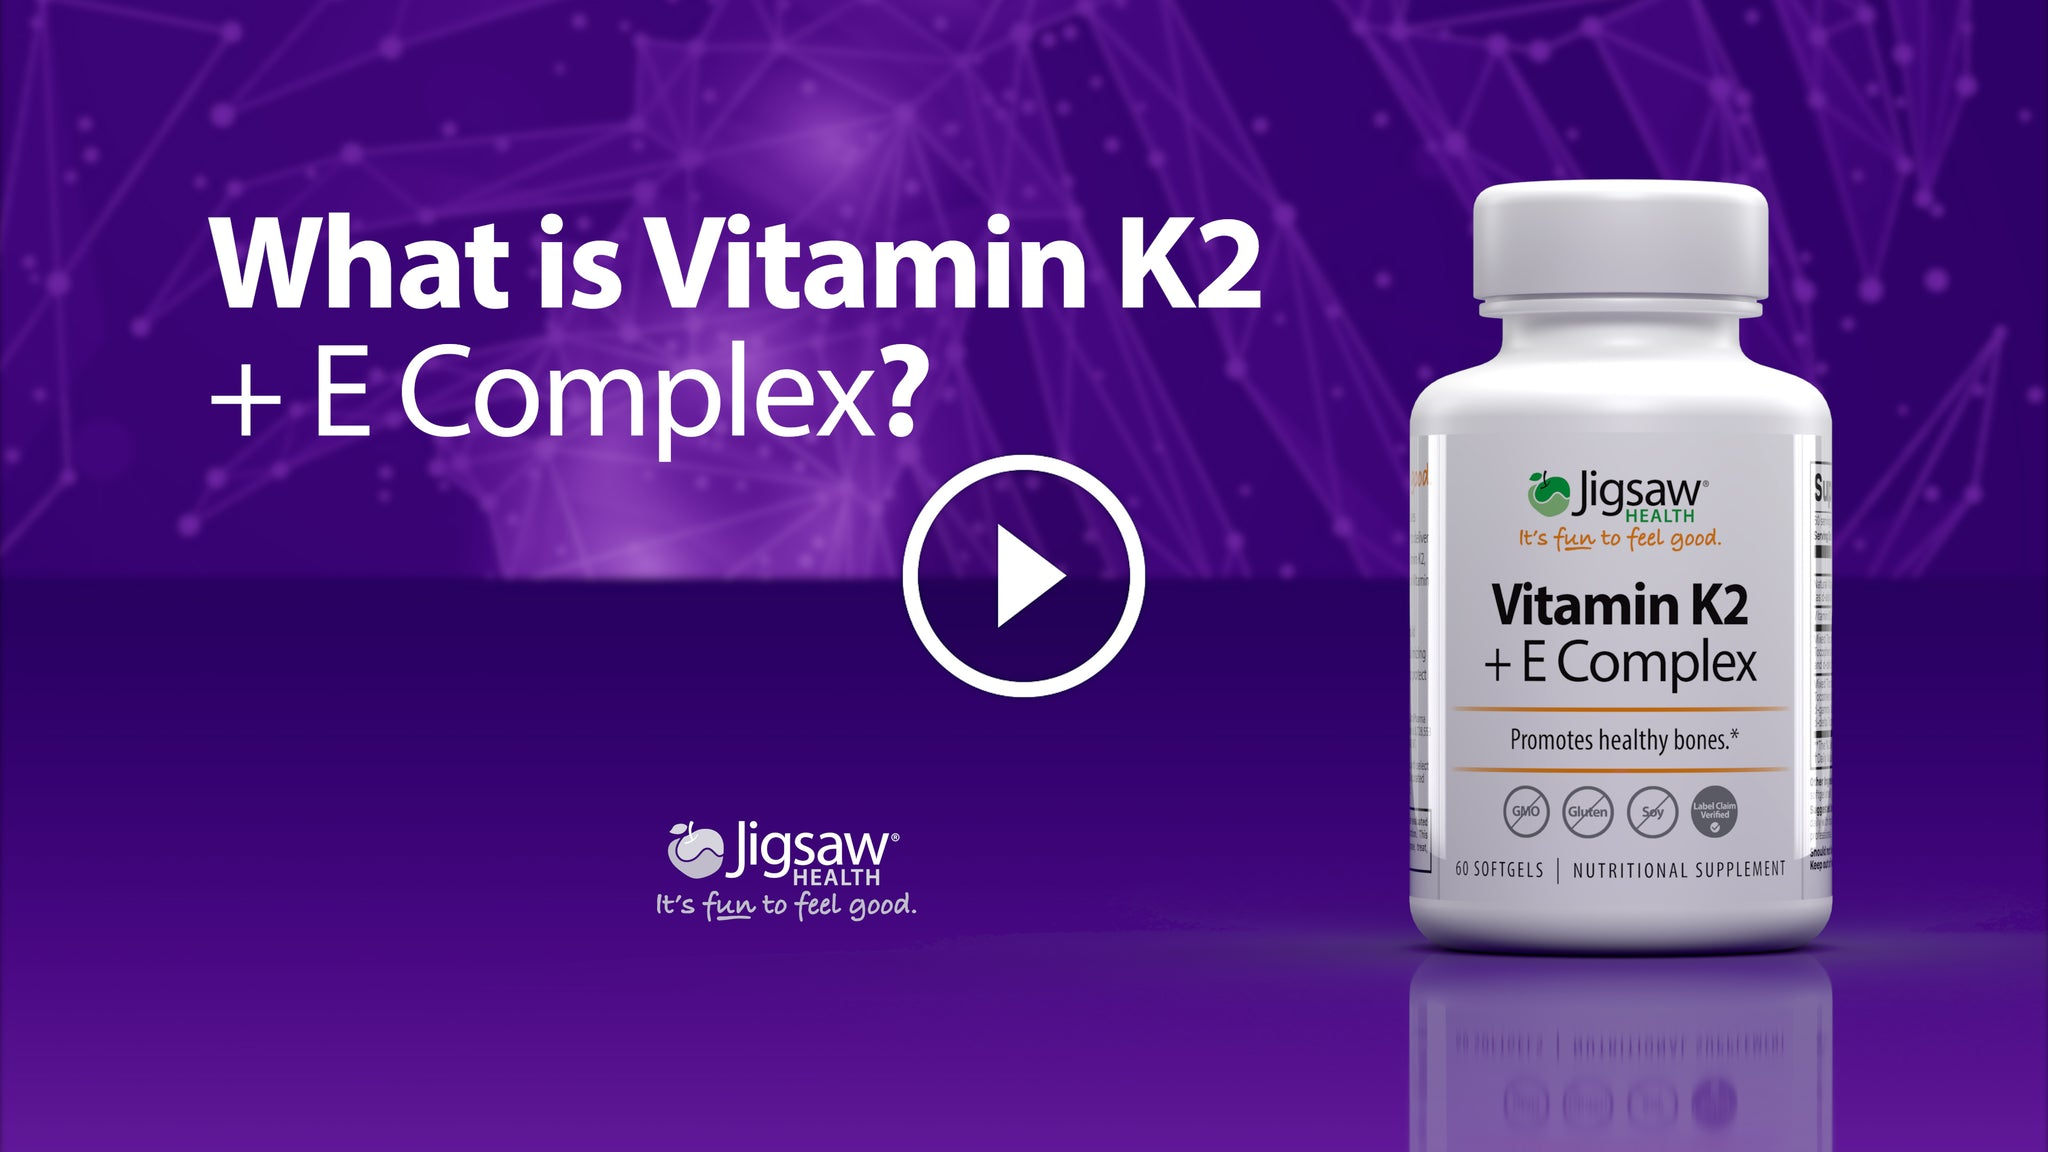 Vitamin K2 + E Complex by Jigsaw Health